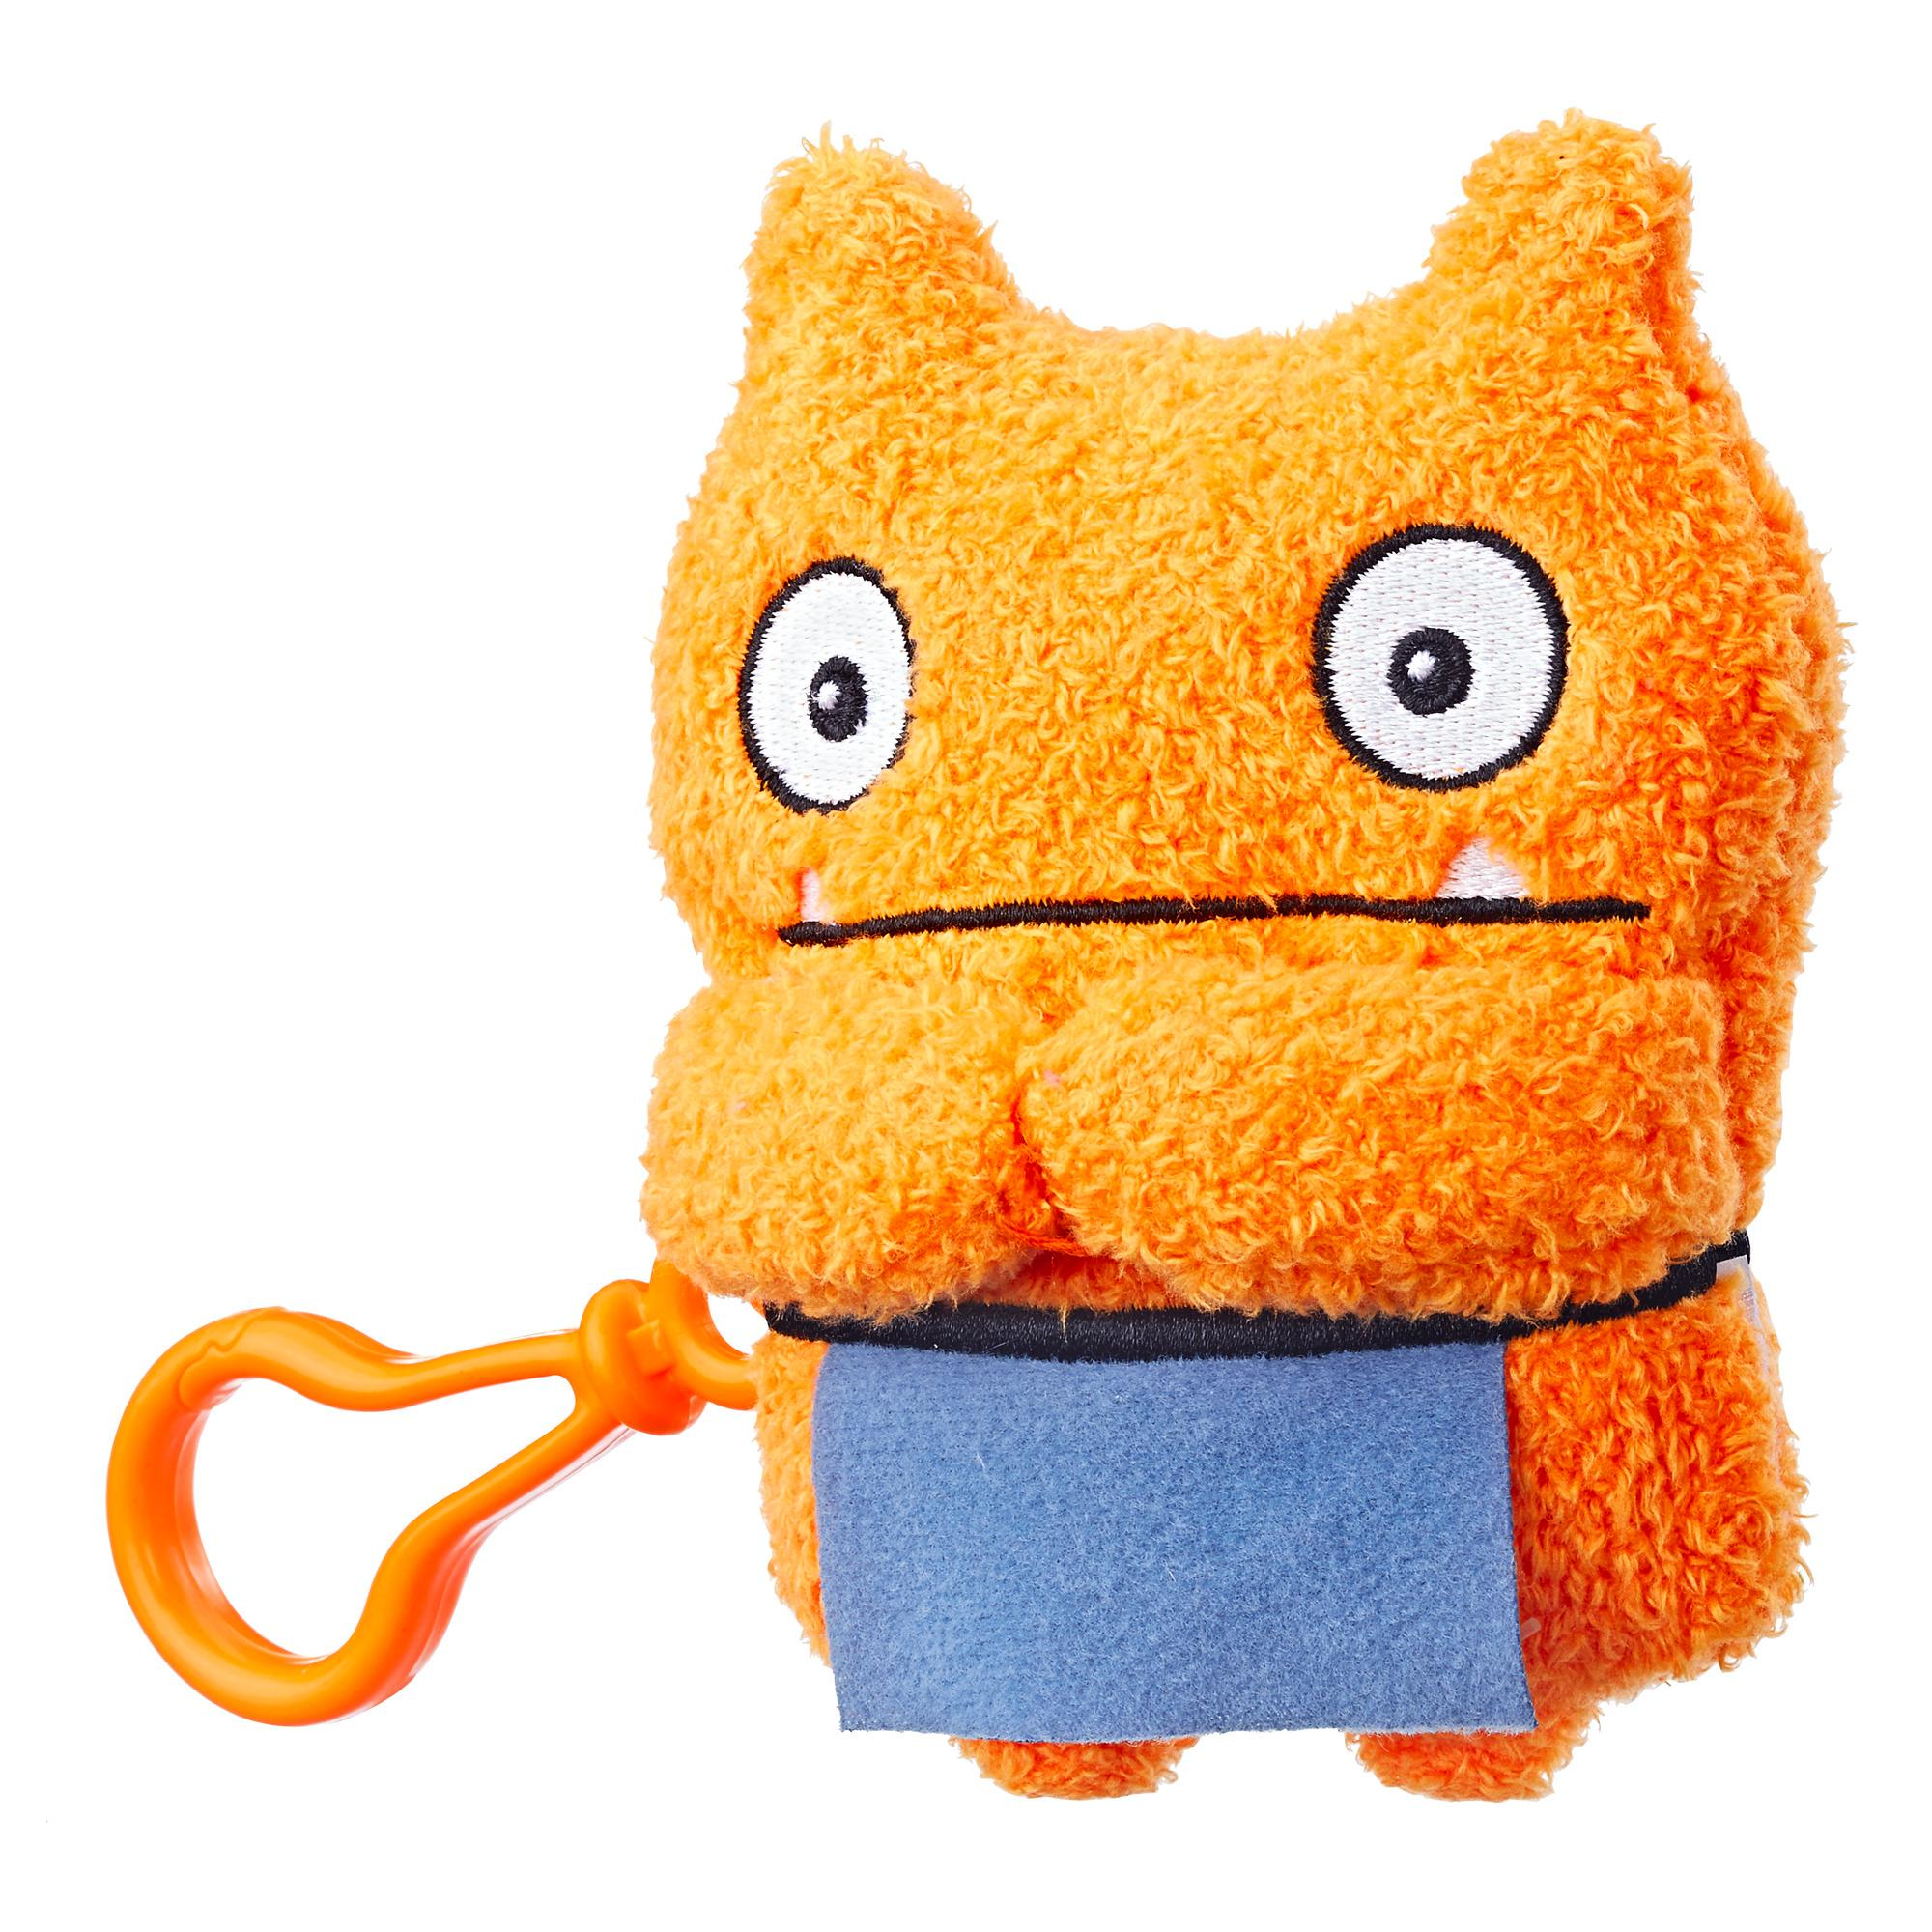 UglyDolls Wage To-Go Stuffed Plush Toy, 13,5 cm tall